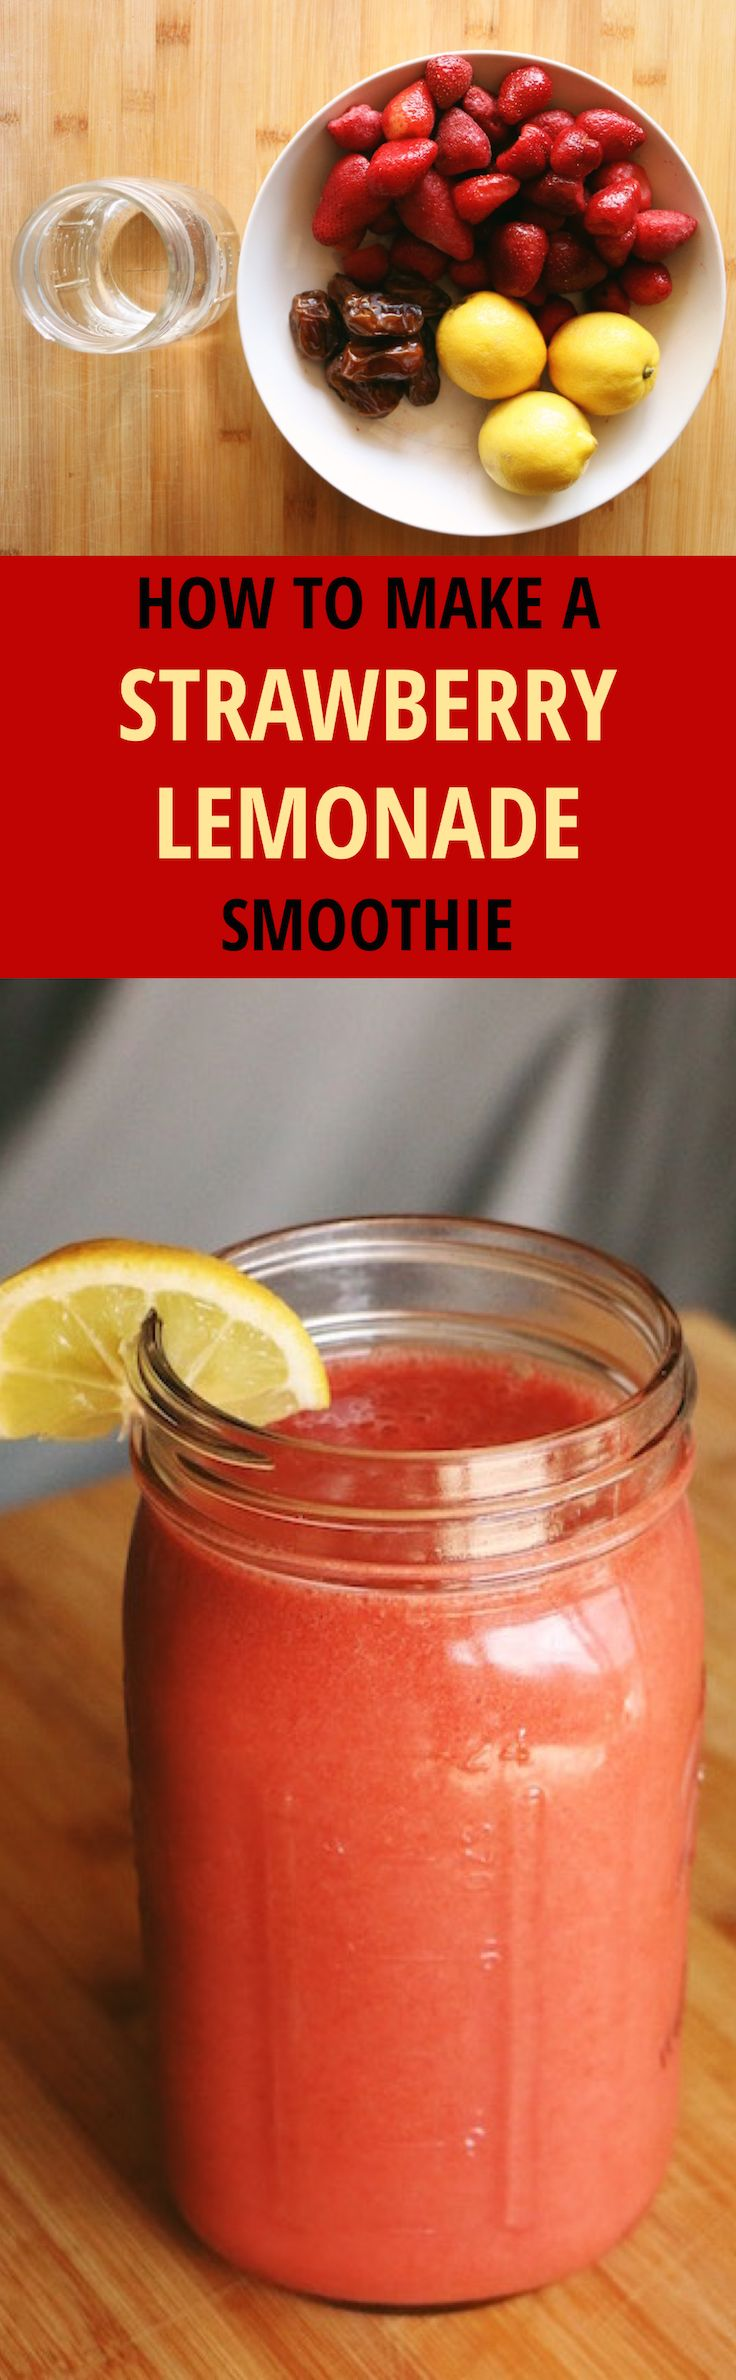 Strawberry lemonade is the ultimate summer drink. Strawberries are a great source of Vitamin C, manganese, folate, and potassium. They are also super rich in antioxidants. Lemons are a great source of Vitamin C as well detoxifying.